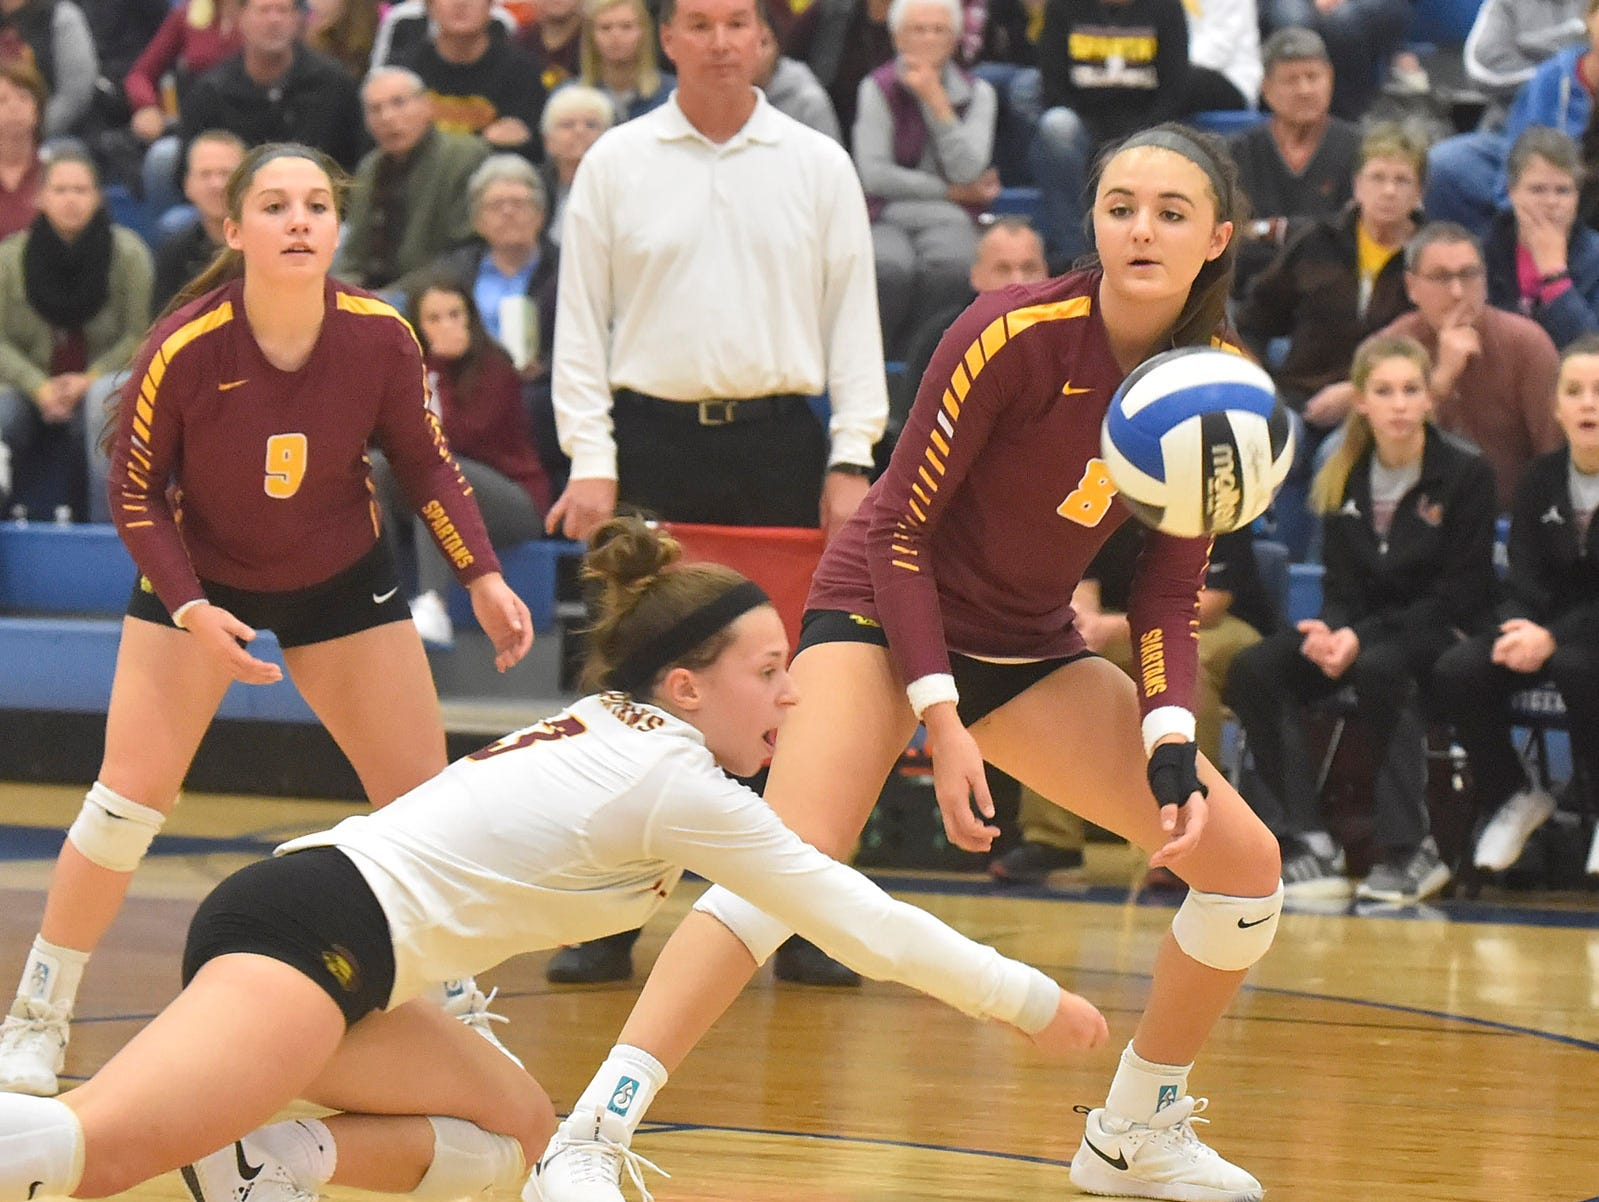 Amanda Miceli of Luxemburg-Casco at the WIAA Division 2 sectional final against Little Chute on Oct. 27, 2018, in Wrightstown. Tina M. Gohr/USA TODAY NETWORK-Wisconsin